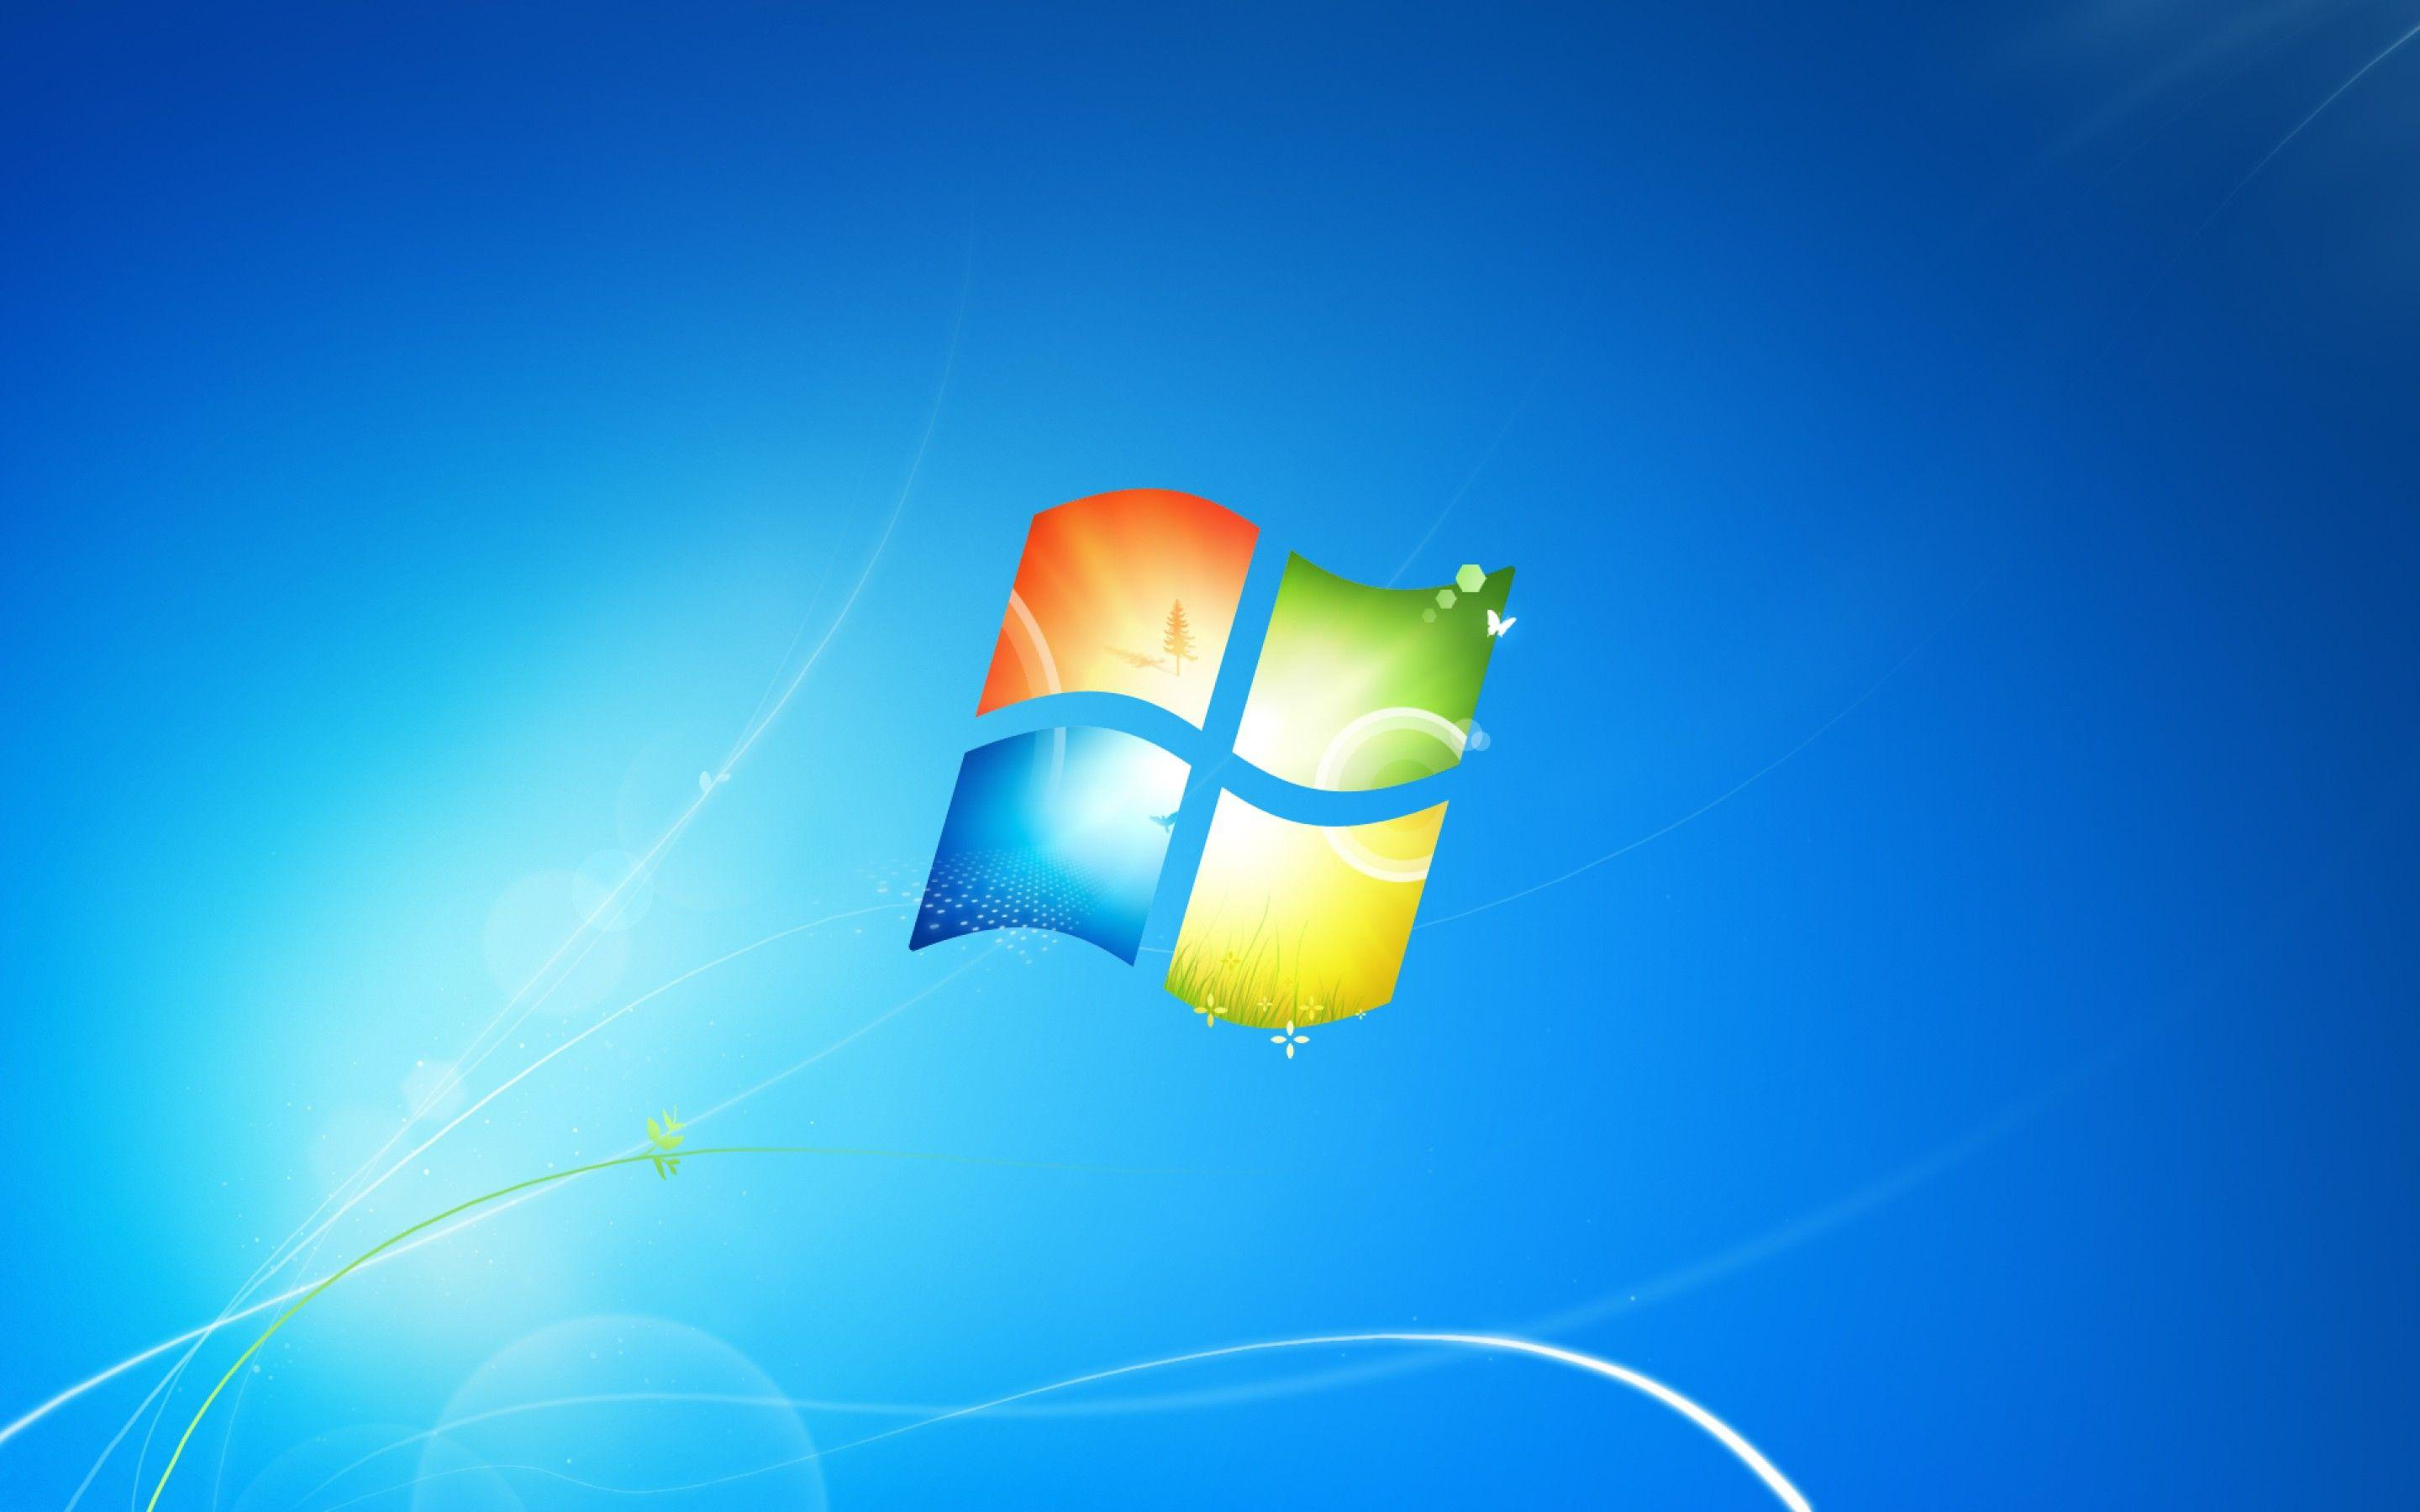 windows 7 wallpapers - wallpaper cave